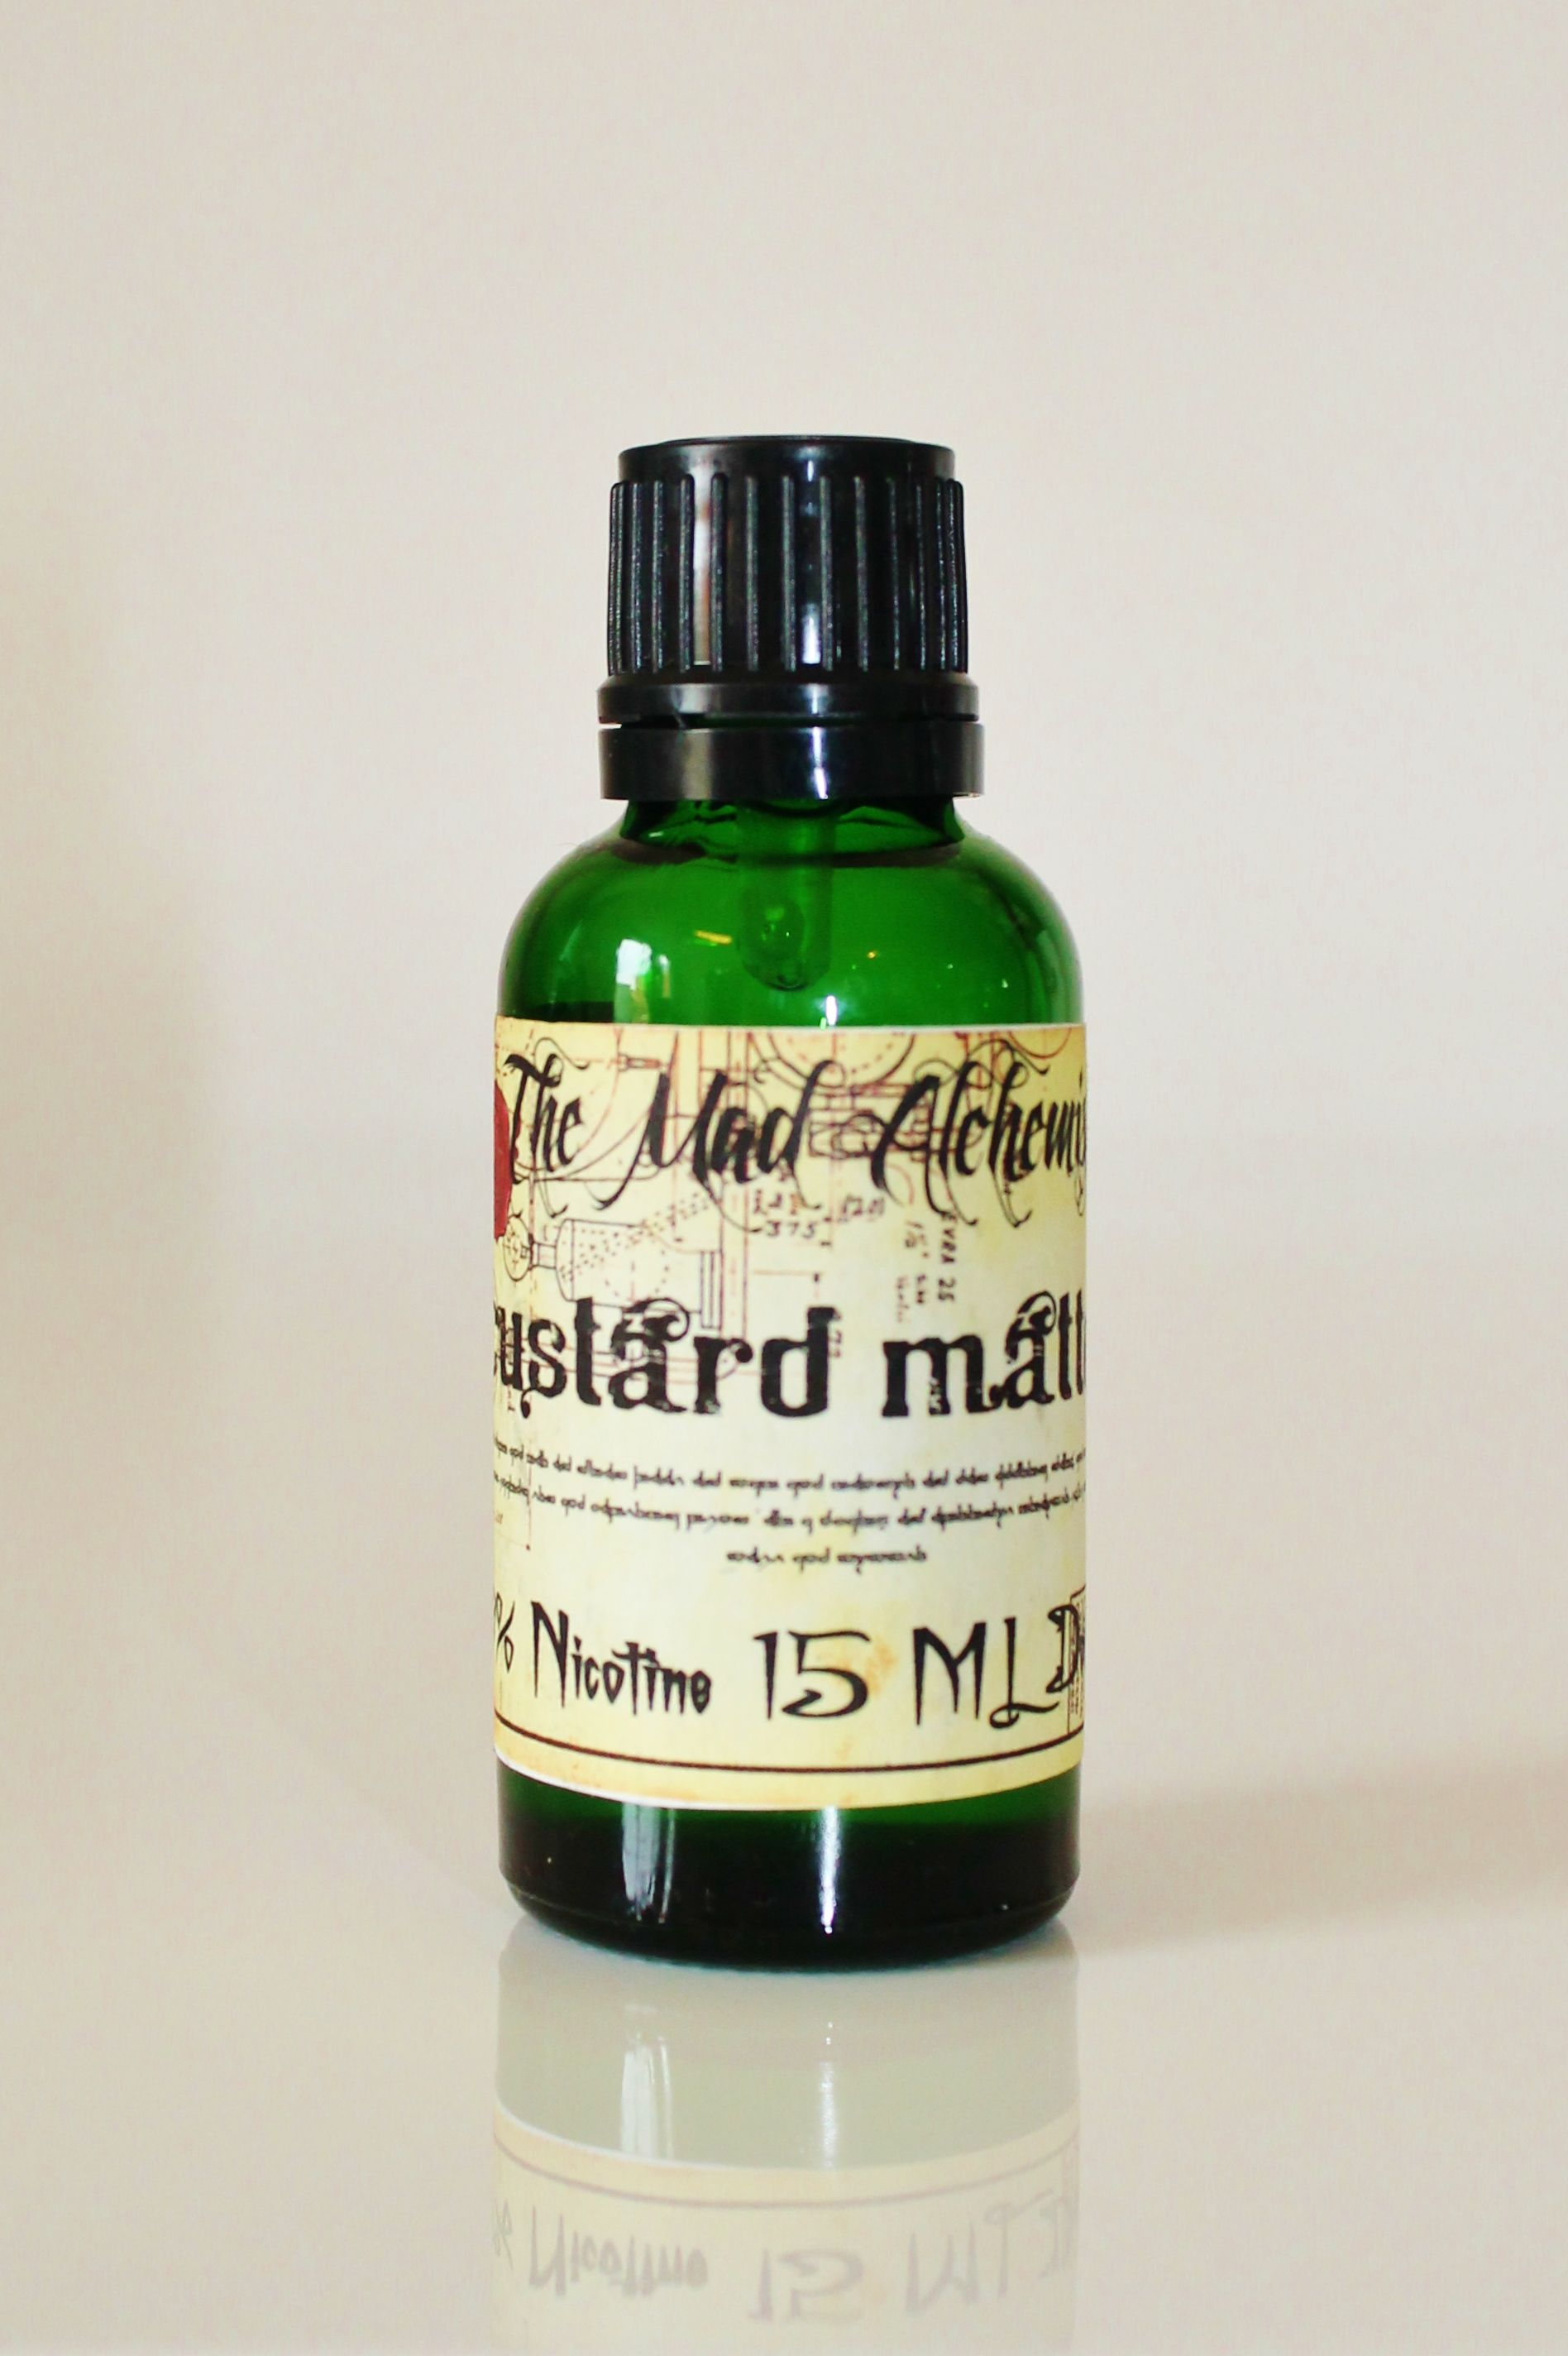 The Mad Alchemist's 'Custard Matter' available from www